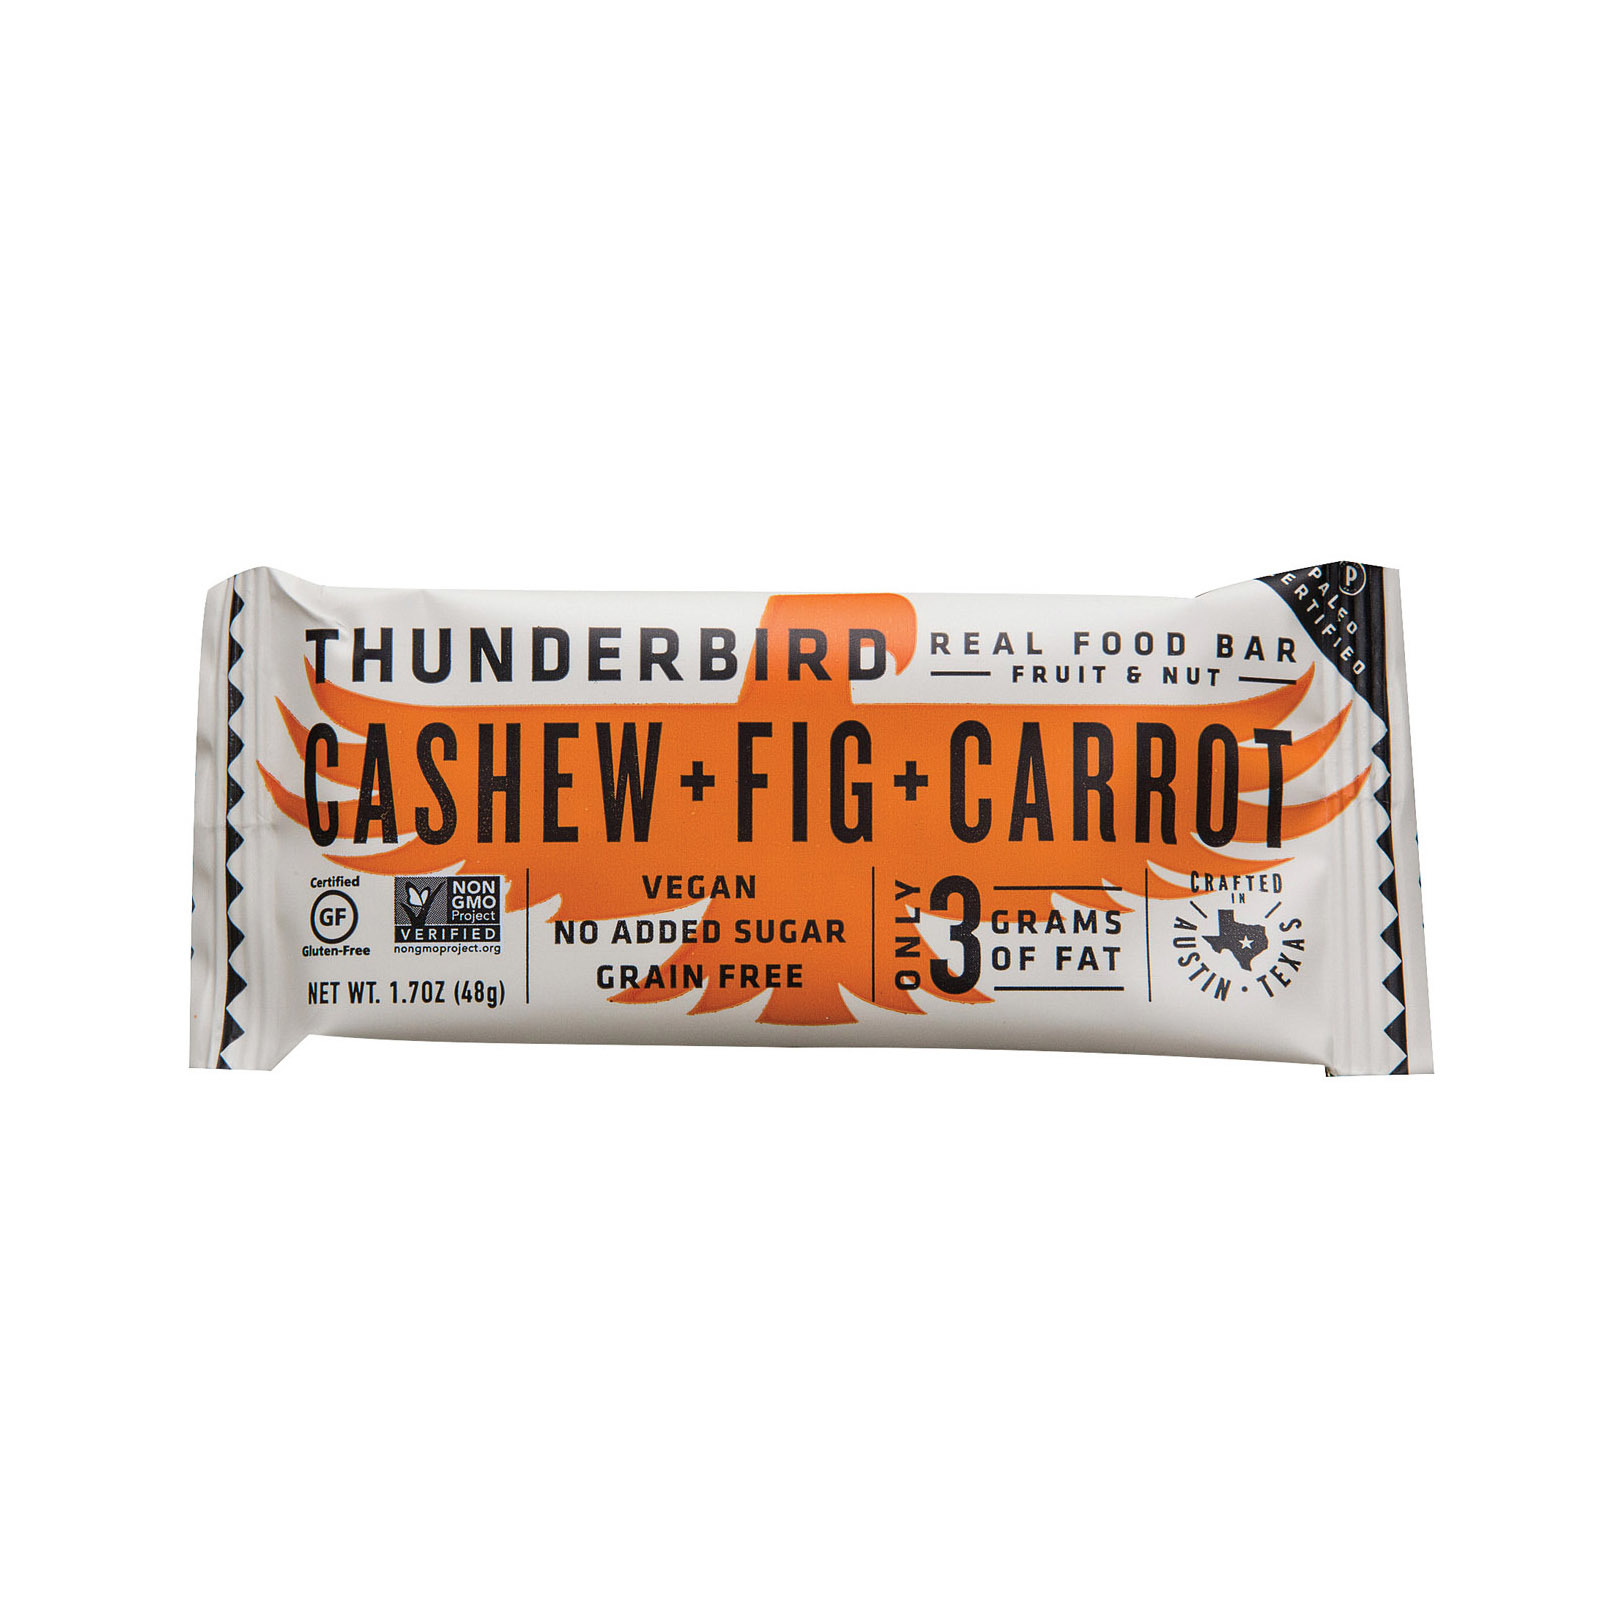 Thunderbird Real Food Bar - Cashew + Fig + Carrot - Case of 15 - 1.7 oz